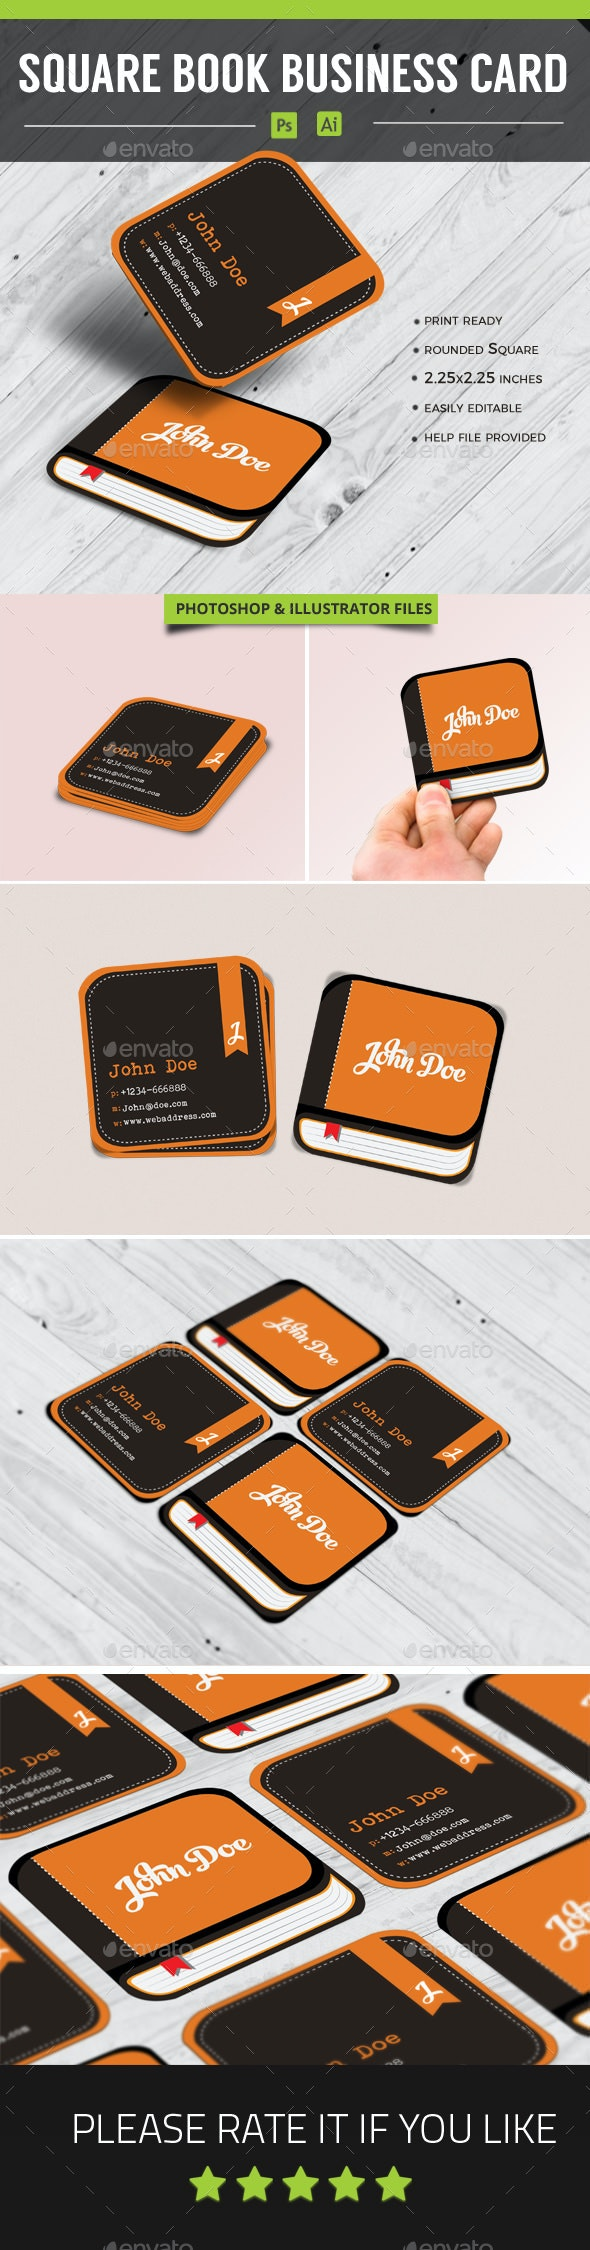 Square Book Business Card Vol 1 - Business Cards Print Templates